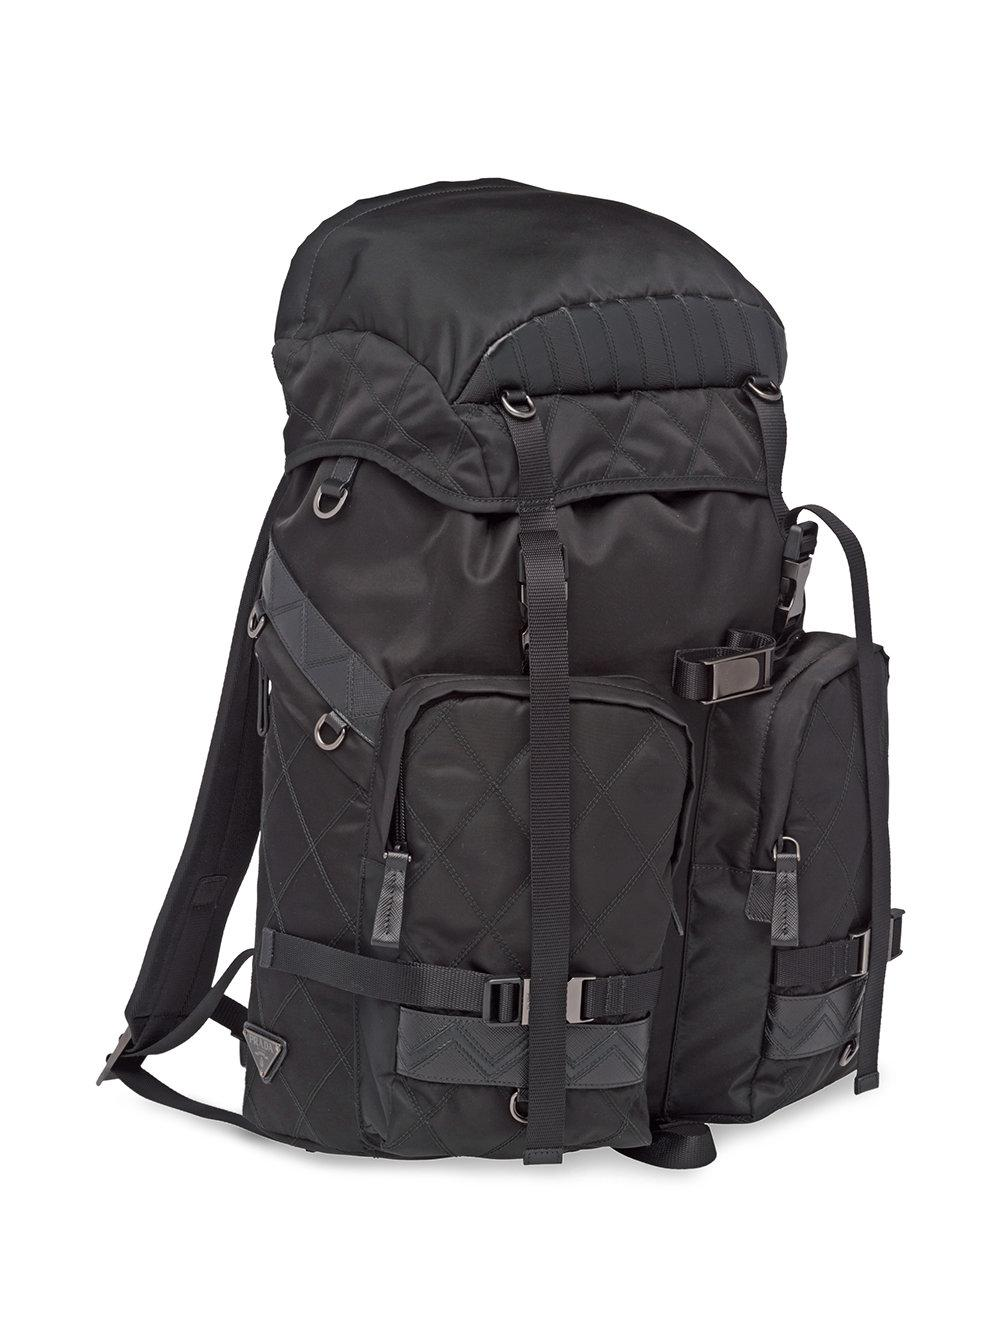 48d18fa4519d0a Prada Technical Fabric Backpack in Black for Men - Lyst